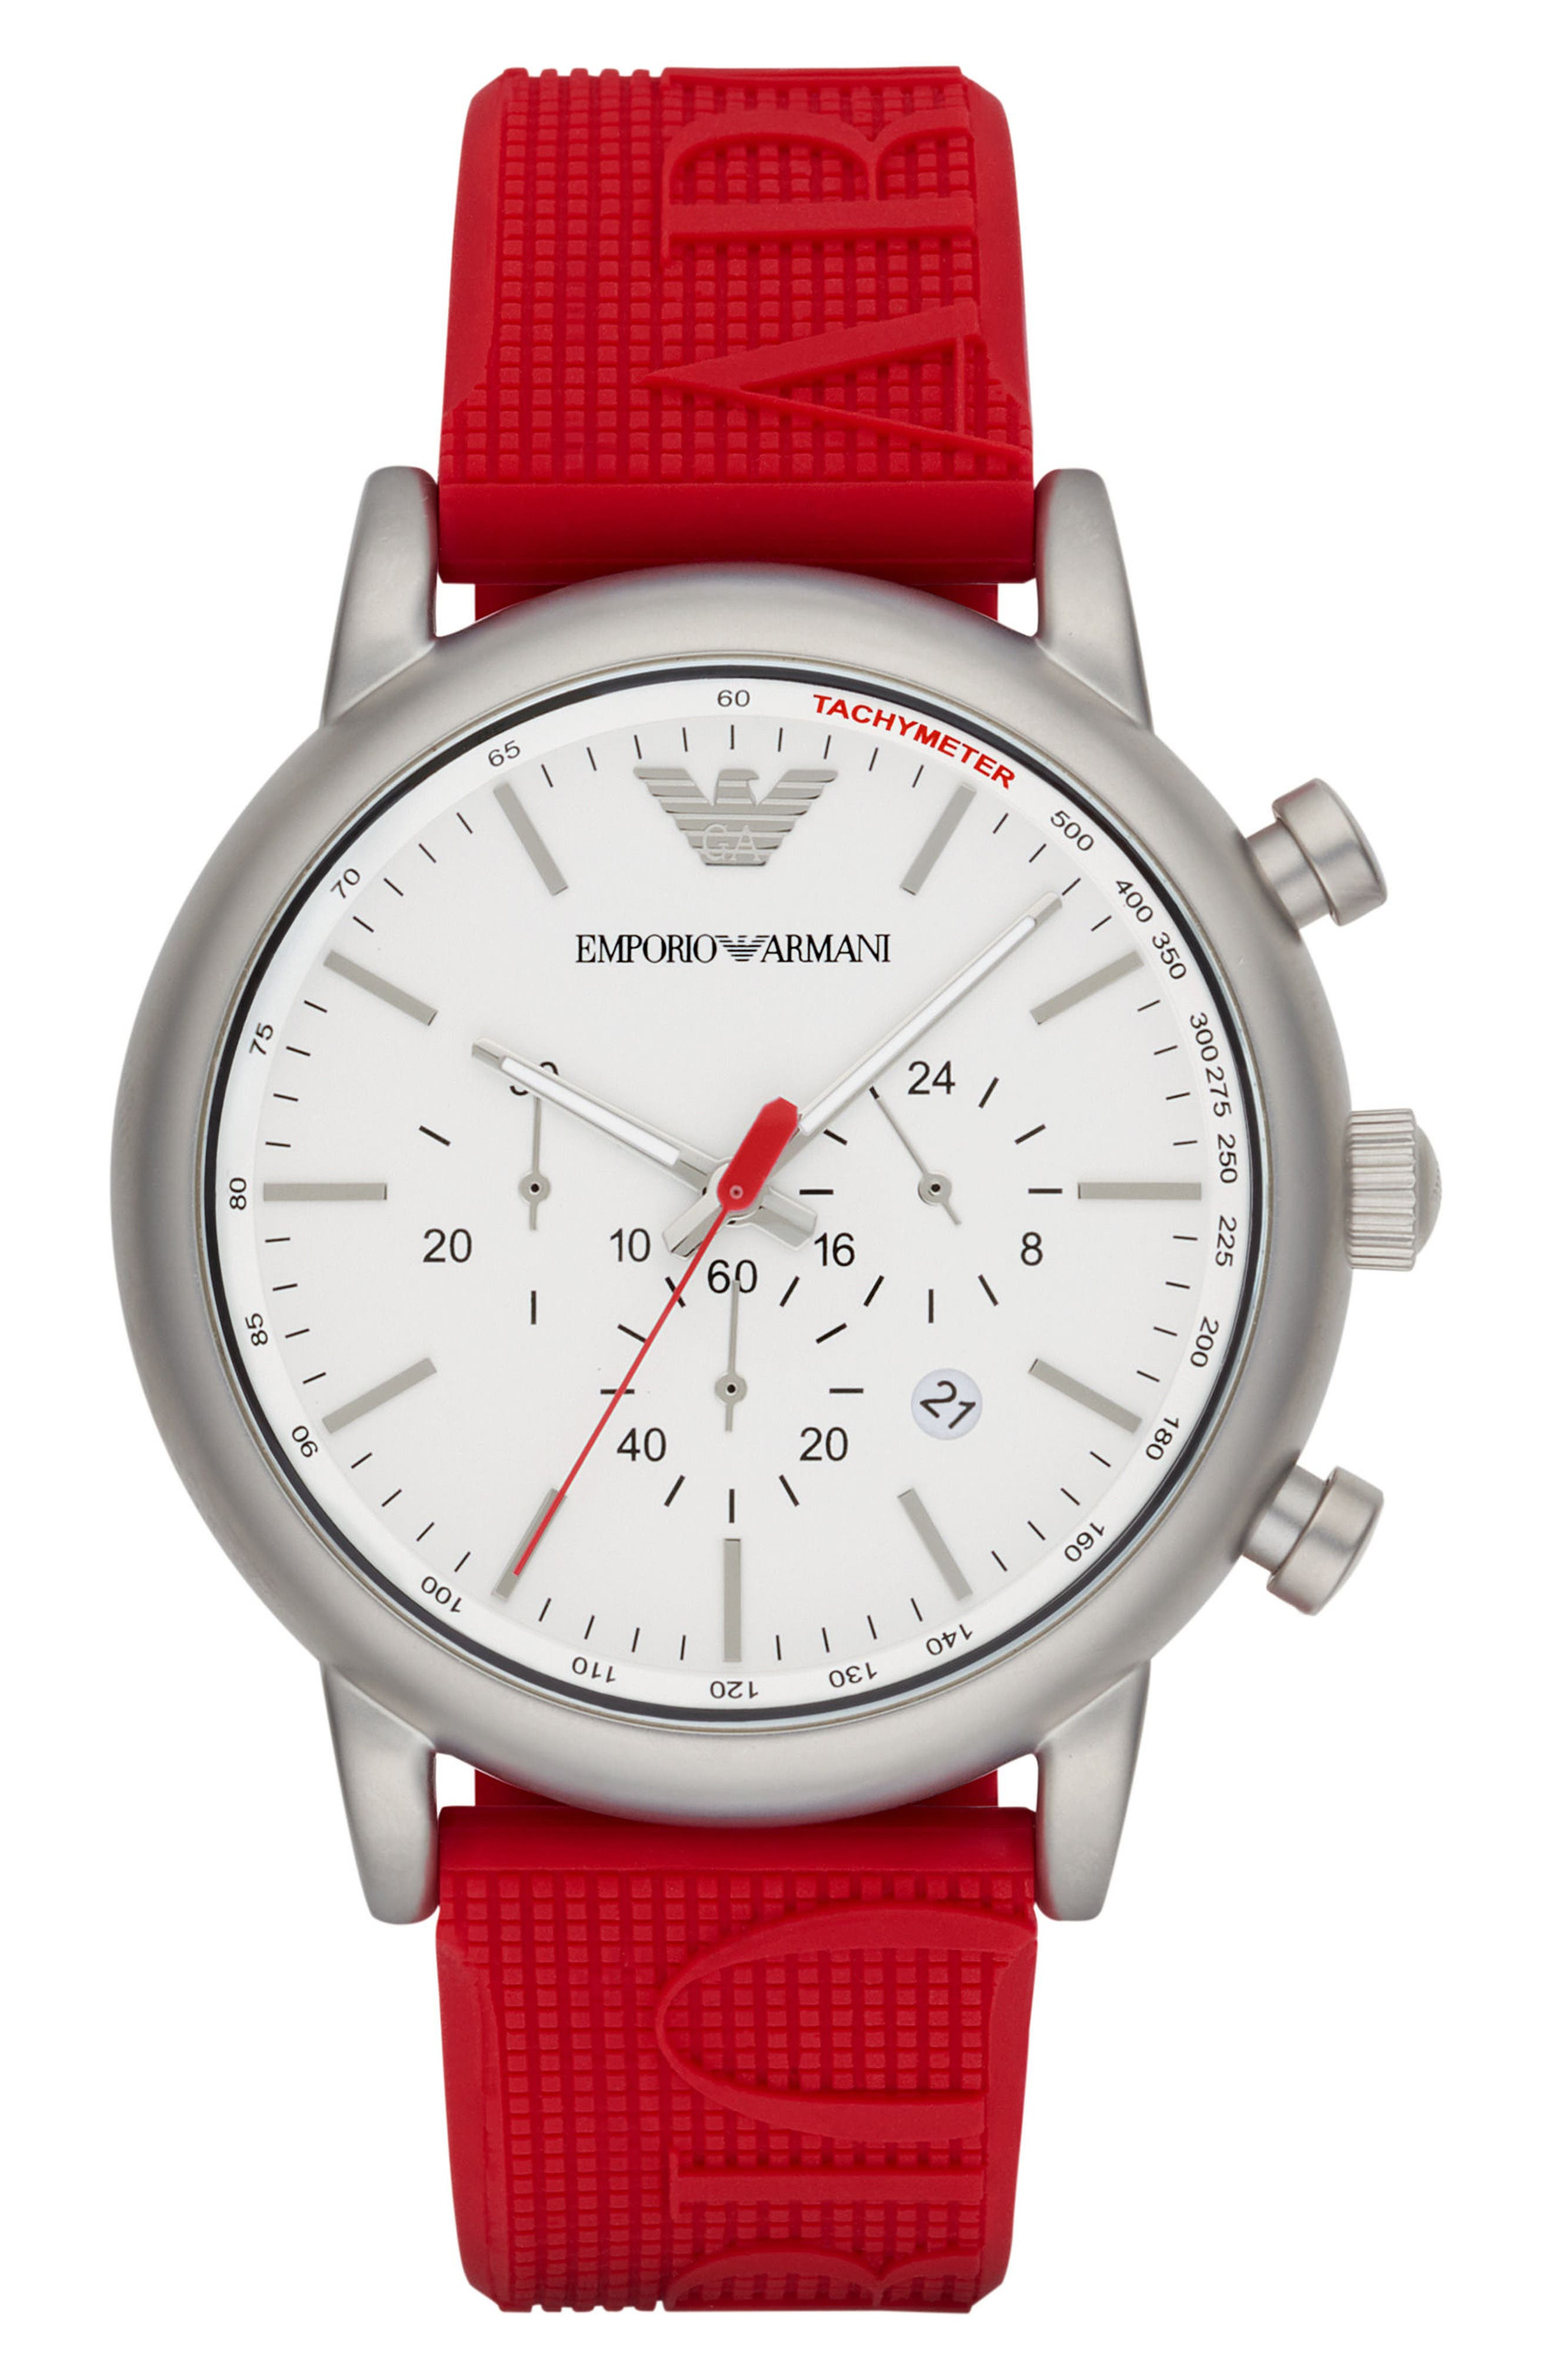 Main Image - Emporio Armani Chronograph Silicone Strap Watch, 32mm